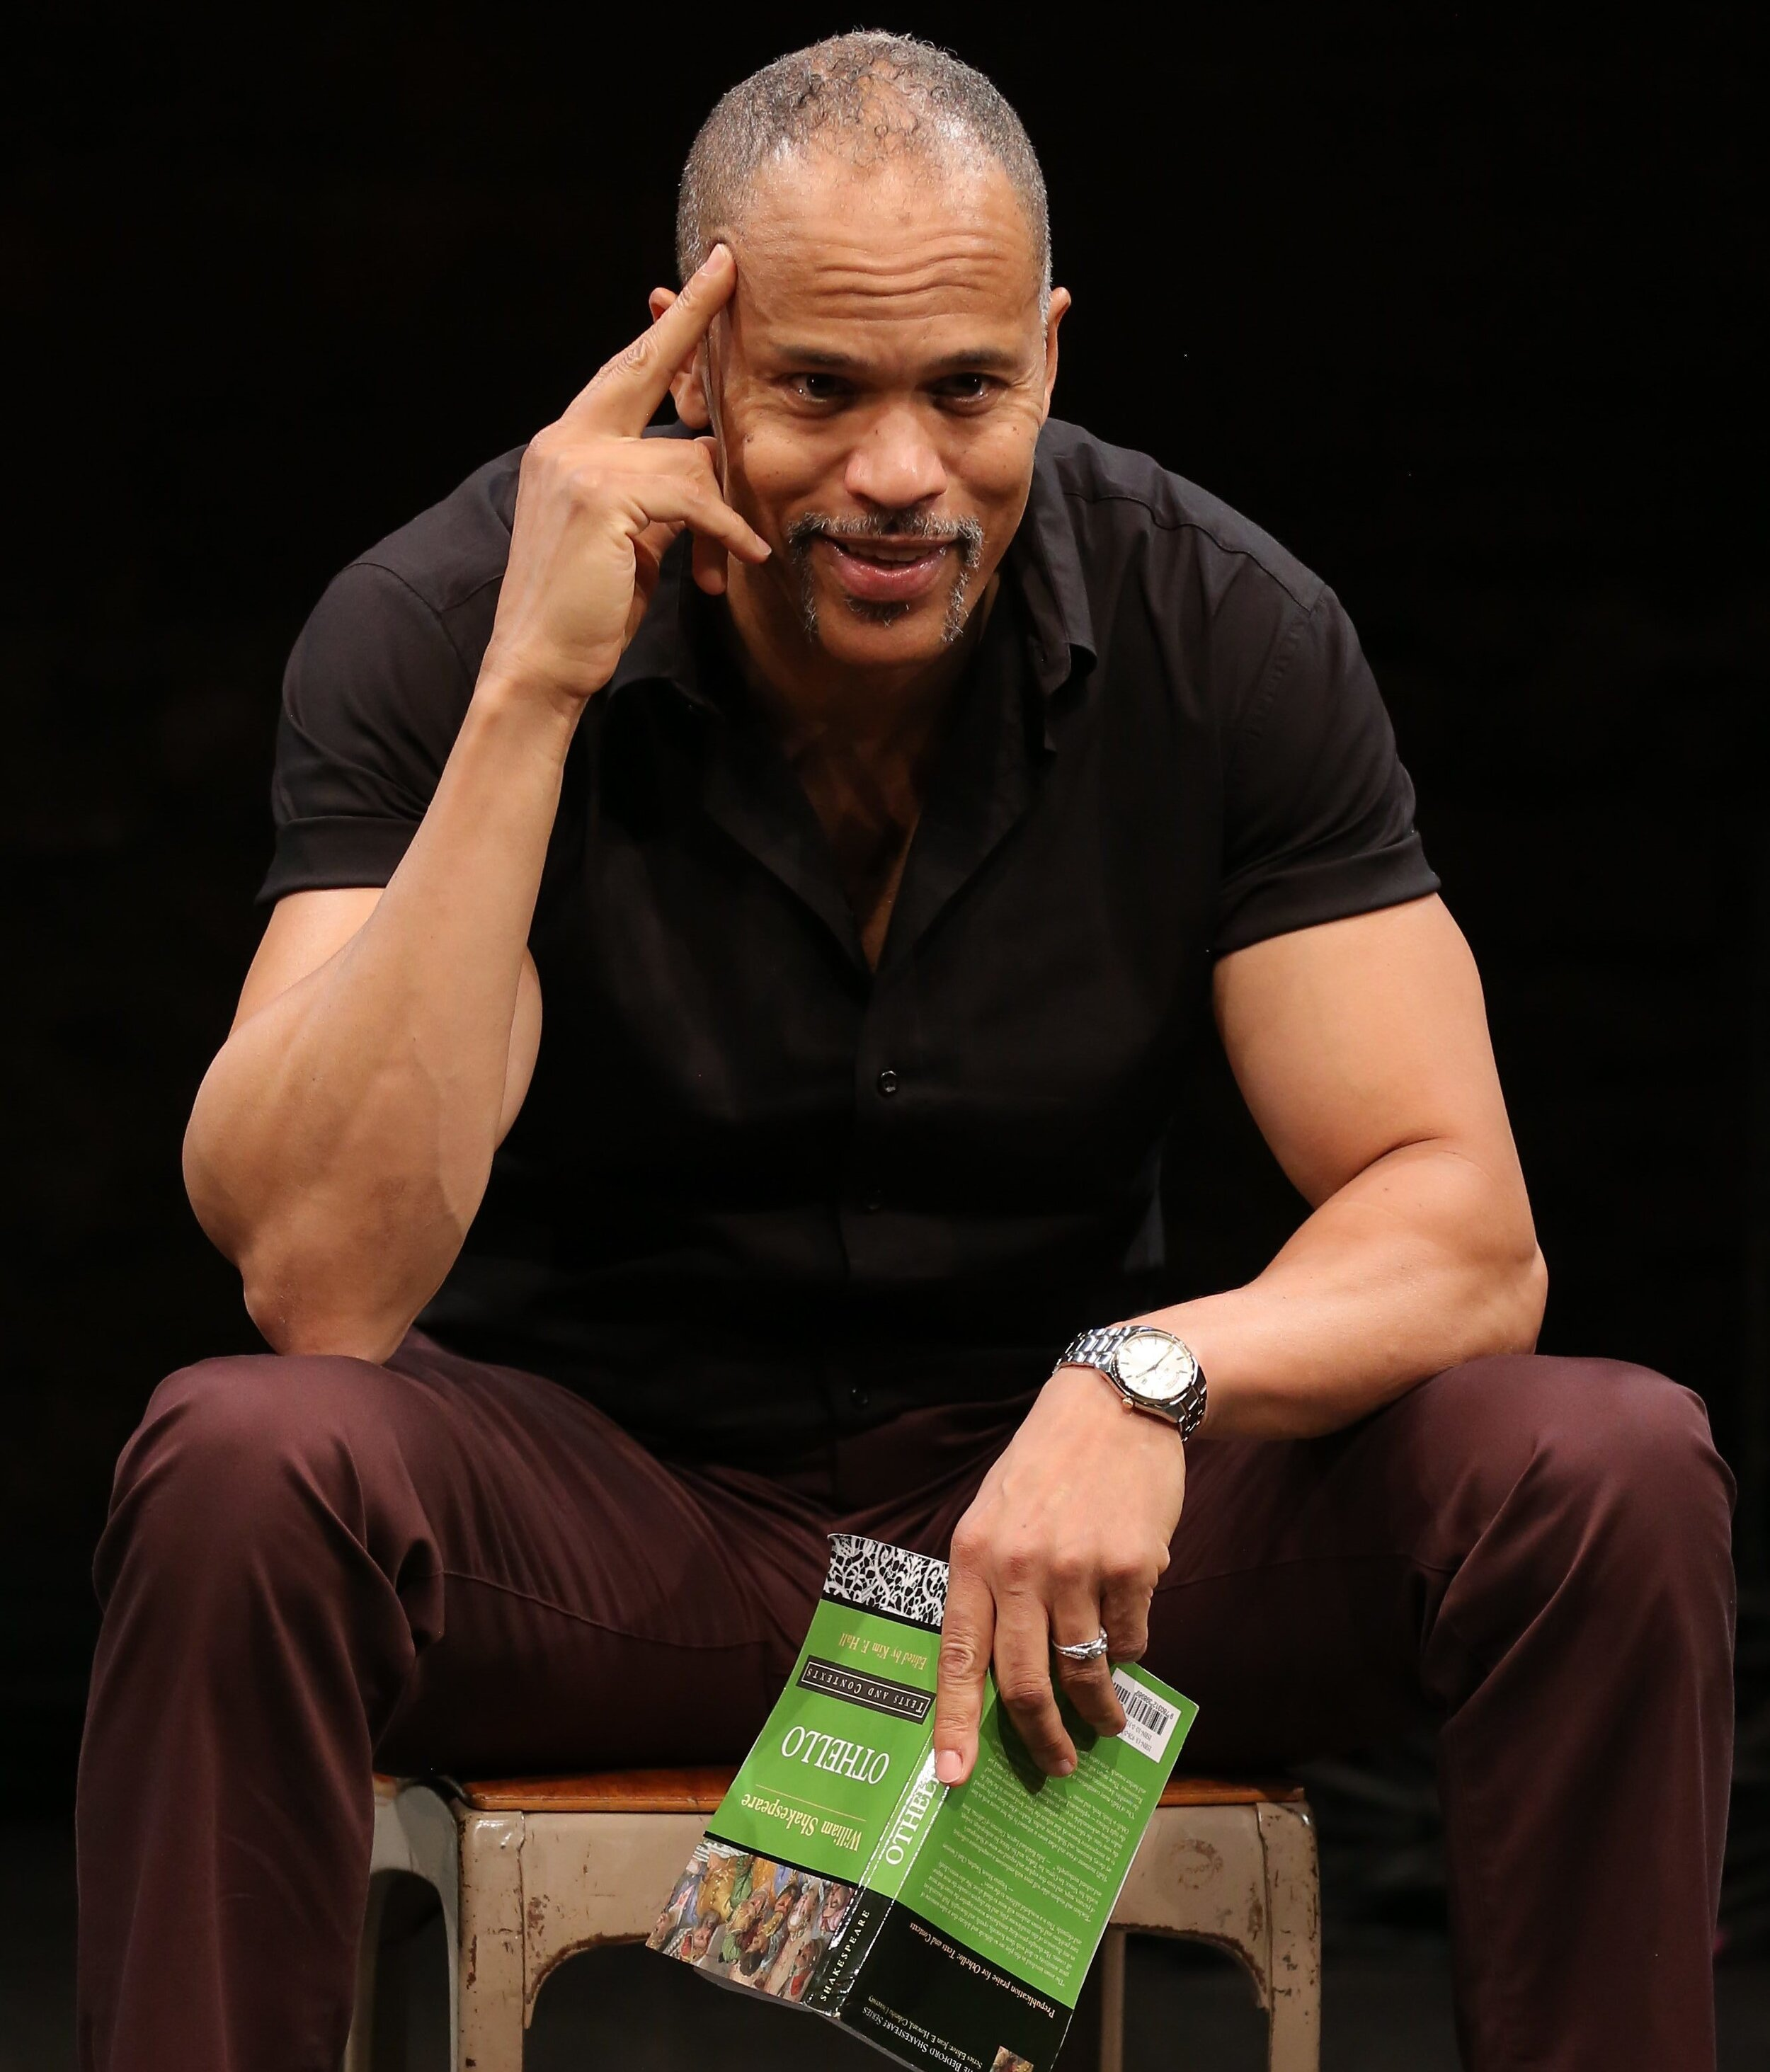 Keith Hamilton Cobb wrote and stars in the play  American Moor,  about a black actor's relationship with Shakespeare, and especially the character of Othello.